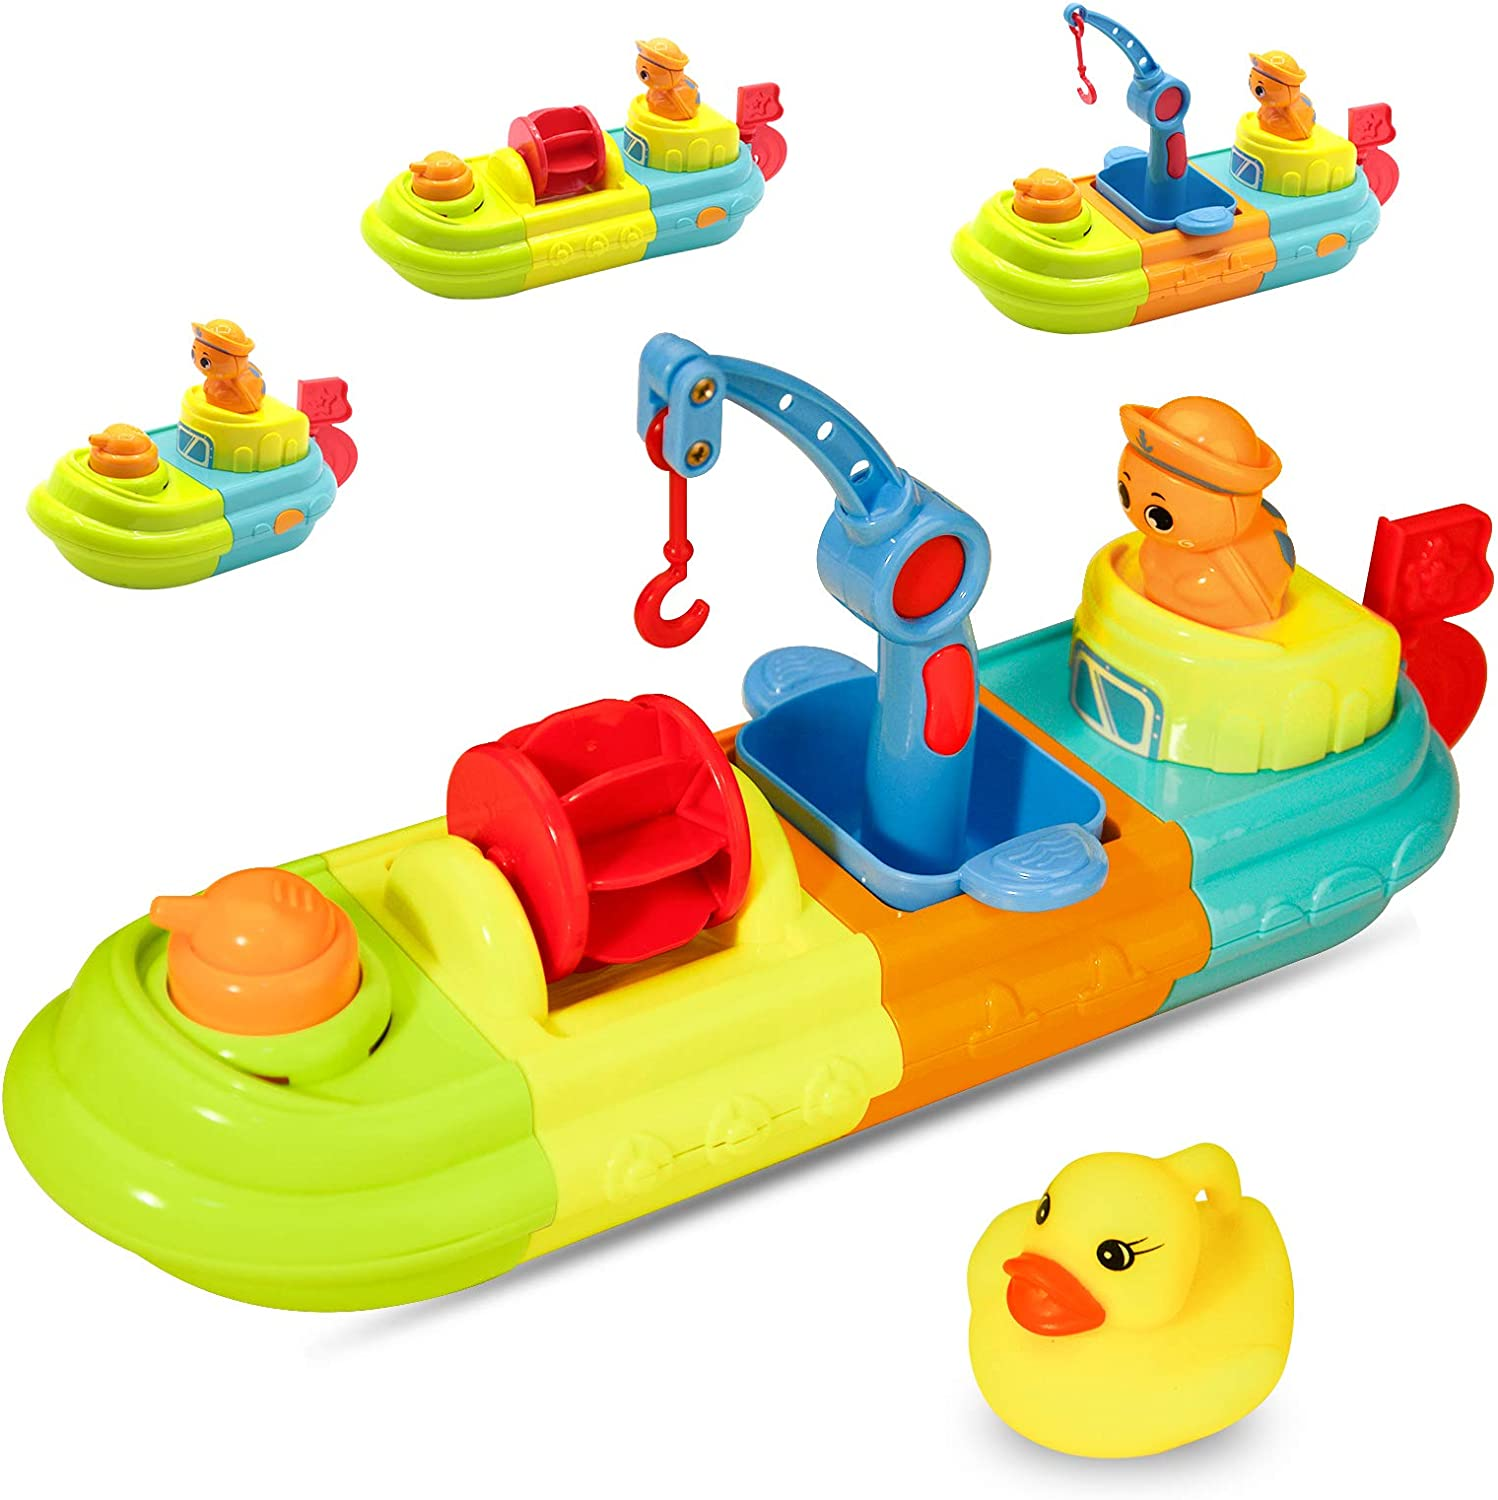 Fun Kids Bathtub Toys for Girls and Boys LBLA Baby Bath Toys for Toddlers 1-3 Wind Up Toy Boat for Water Play Spray Toys for Kids with Duck and Turtle